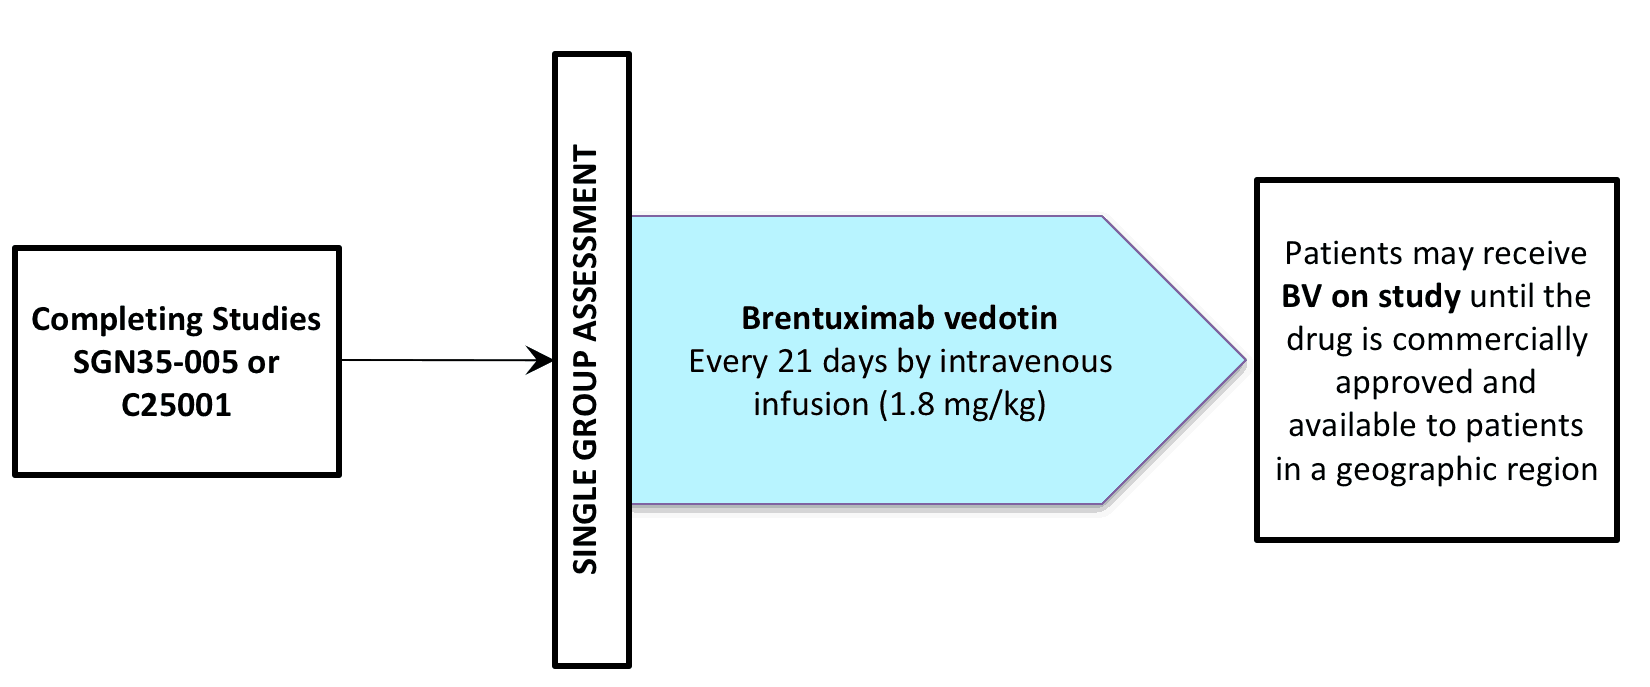 NCT01569204 (CLINICAL TRIAL / BRENTUXIMAB VEDOTIN / SGN-035 / ADCETRIS®)